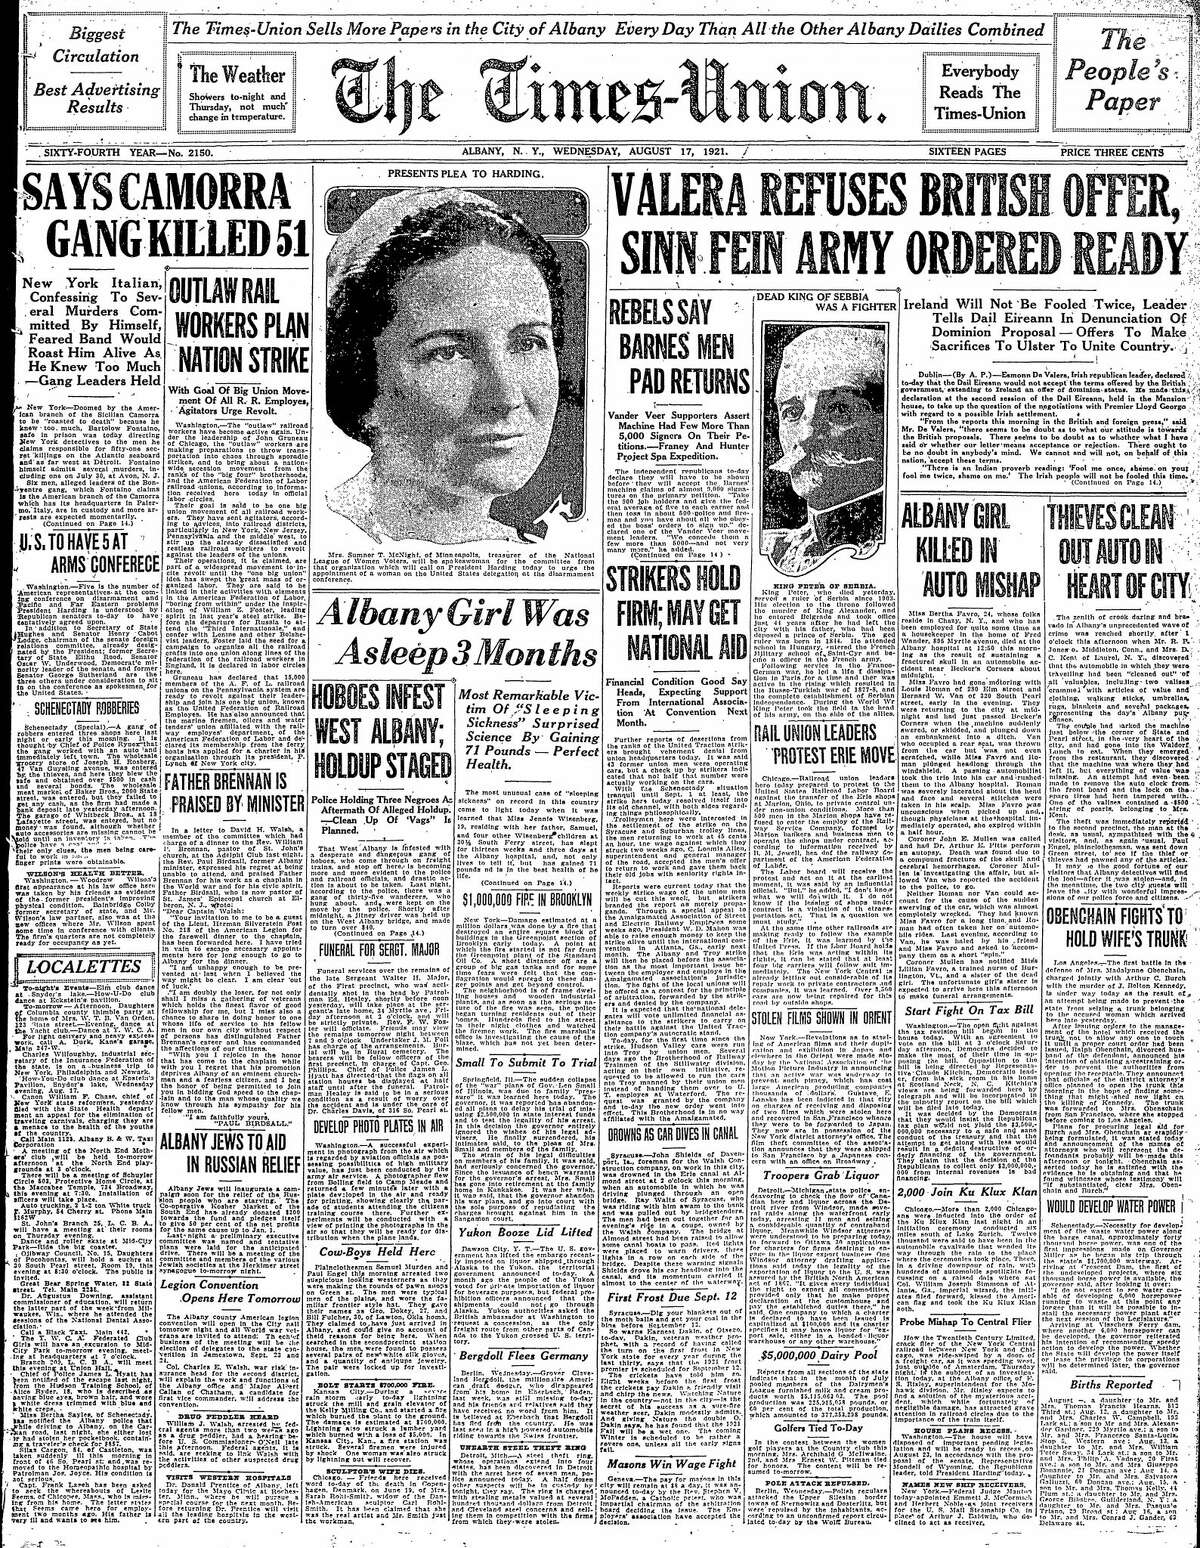 Front page of the Times Union, Aug. 17, 1921.